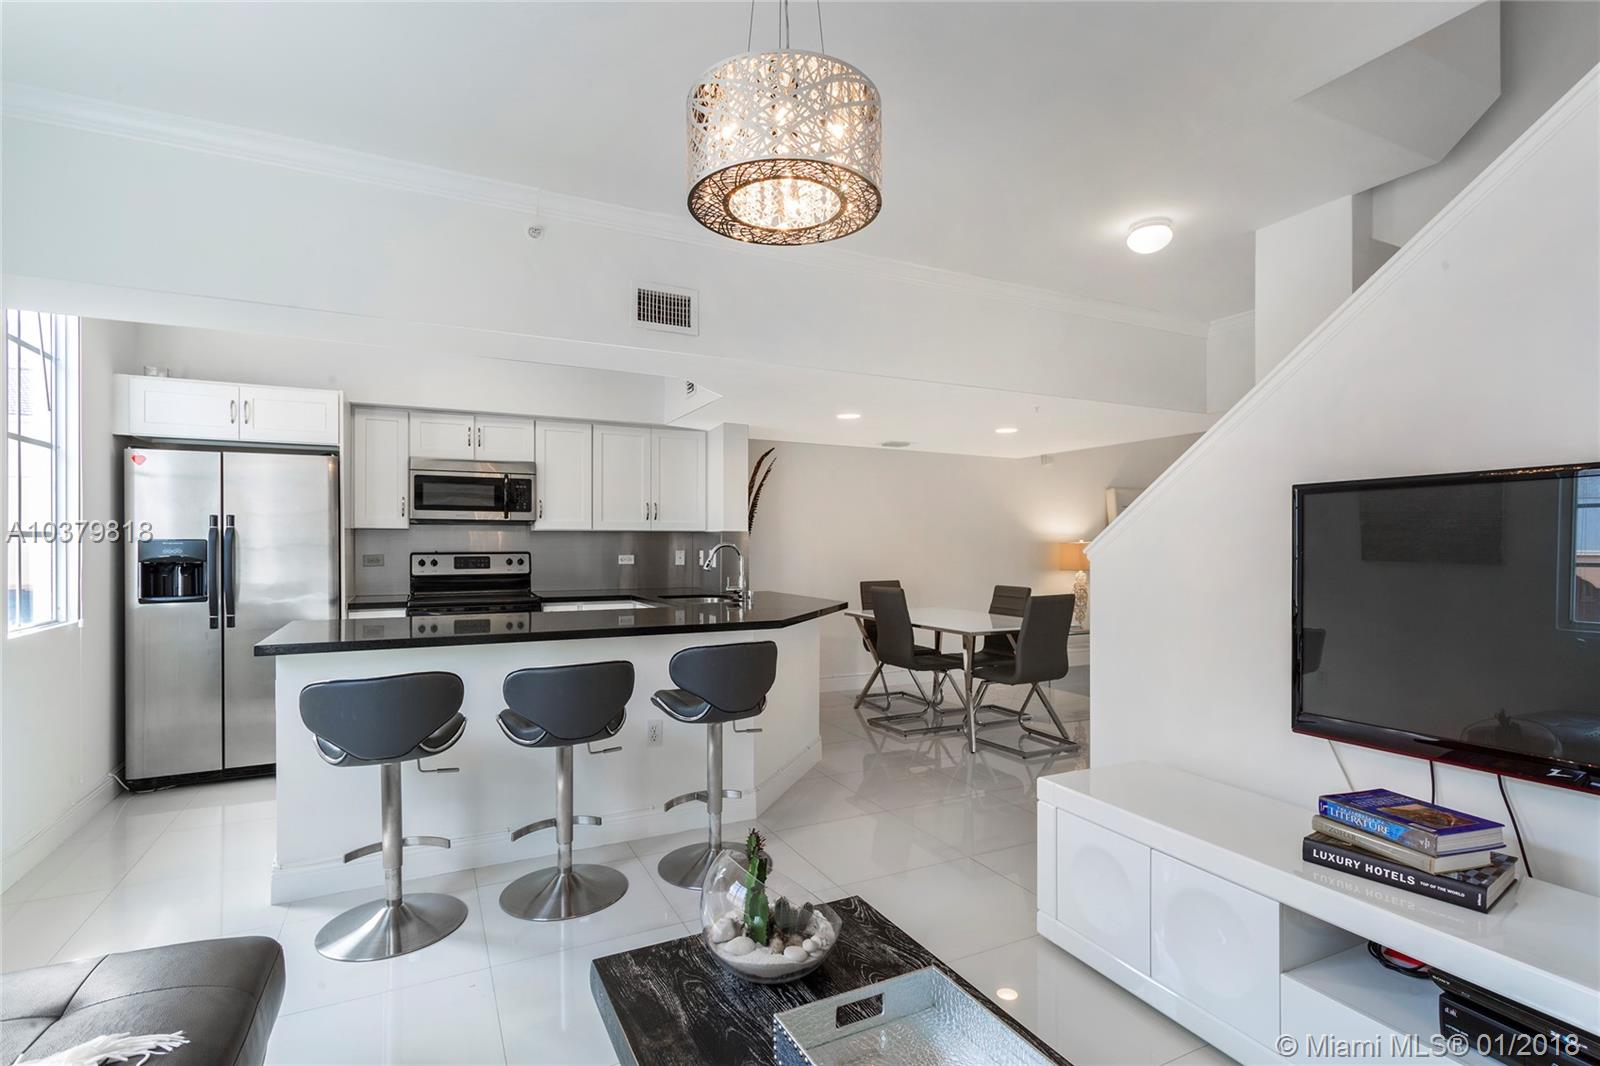 Rare Opportunity To Purchase A 3/2 Town Home Perfectly Located In The Very Sought After Aventi In Aventura. <Br />The Unit Is Tastefully Furnished, With White Porcelain Floors, And Comes With 2-Car Garage With An Extra Parking Space Outside. Excellent+É-Álocation Next To A High-Lift Marina, Temple Sinai, Founders Park, Turnberry Isle Miami Golf Course, Dining And Shopping Area, 6-Minutes Drive To Aventura Mall.<Br />Very Low Maintenance That Includes Insurance, Cable Tv, Landscaping And 24-Hour Security. <Br />A Dock Slip Is Available For A 43''Boat For Additional Charge. <Br />Washer And Dryer Inside The Unit. Best Price Per Sf In The Whole Complex.<Br />Dog Can Not Exceed 75 Lbs.<Br />Proof Of Funds Required To Present Offers, As Is Contract.